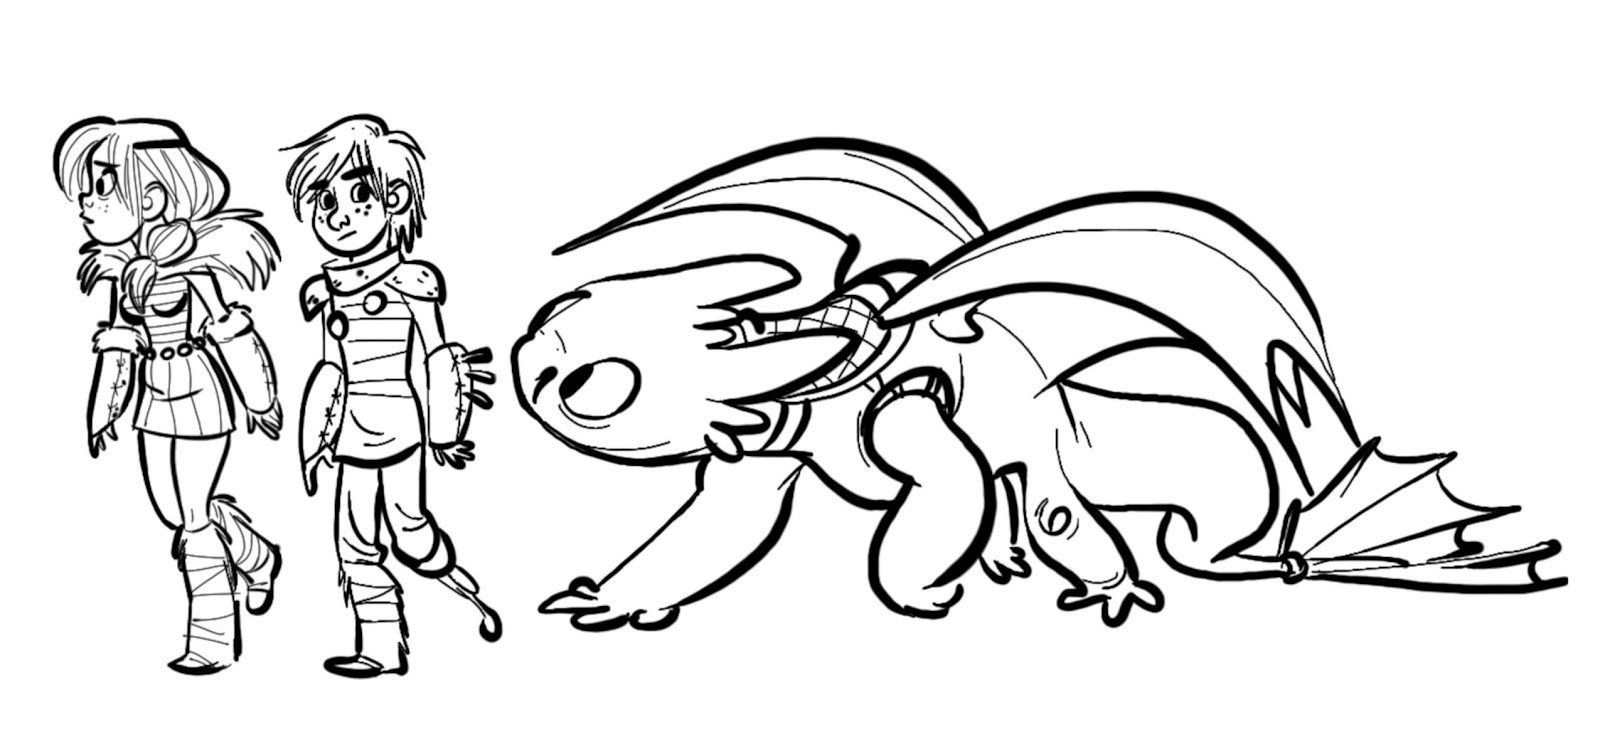 How To Train Your Dragon 2 Coloring Pages How To Train Your Dragon New Httyd 2 Images Hiccup S New Dragon Coloring Page Coloring Pages How Train Your Dragon